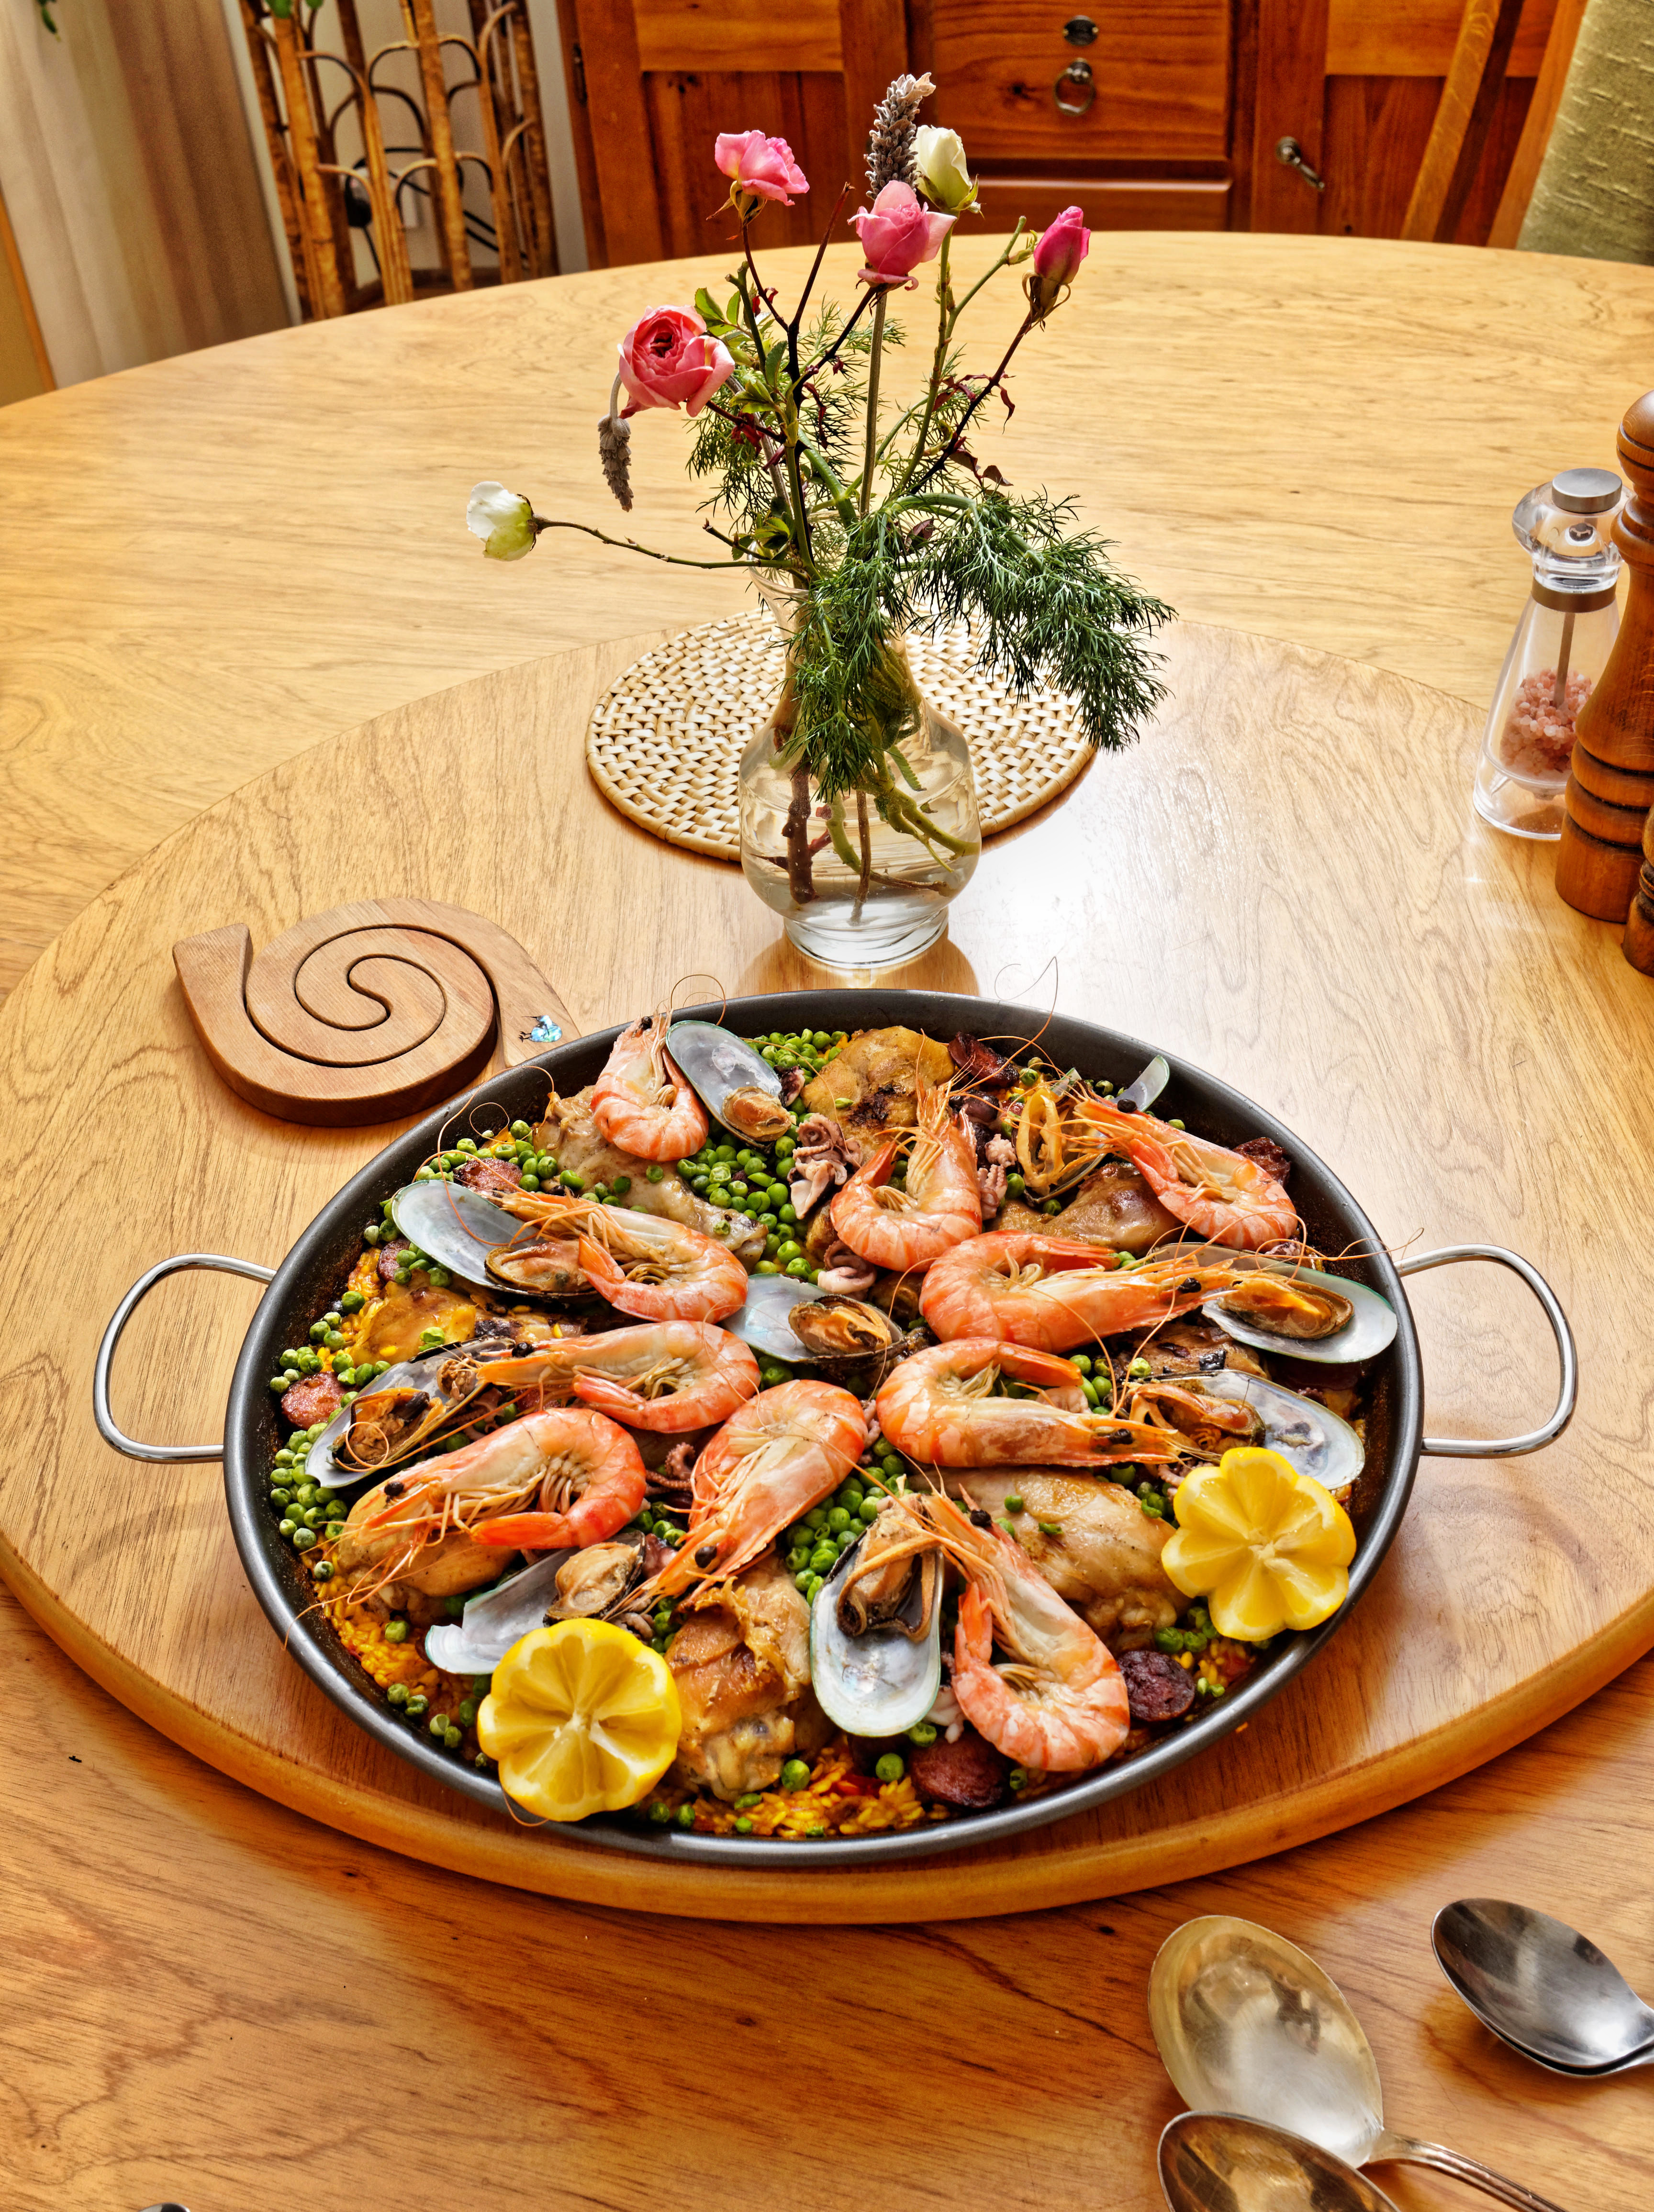 This should be Paella-5.jpeg.  Is it missing?